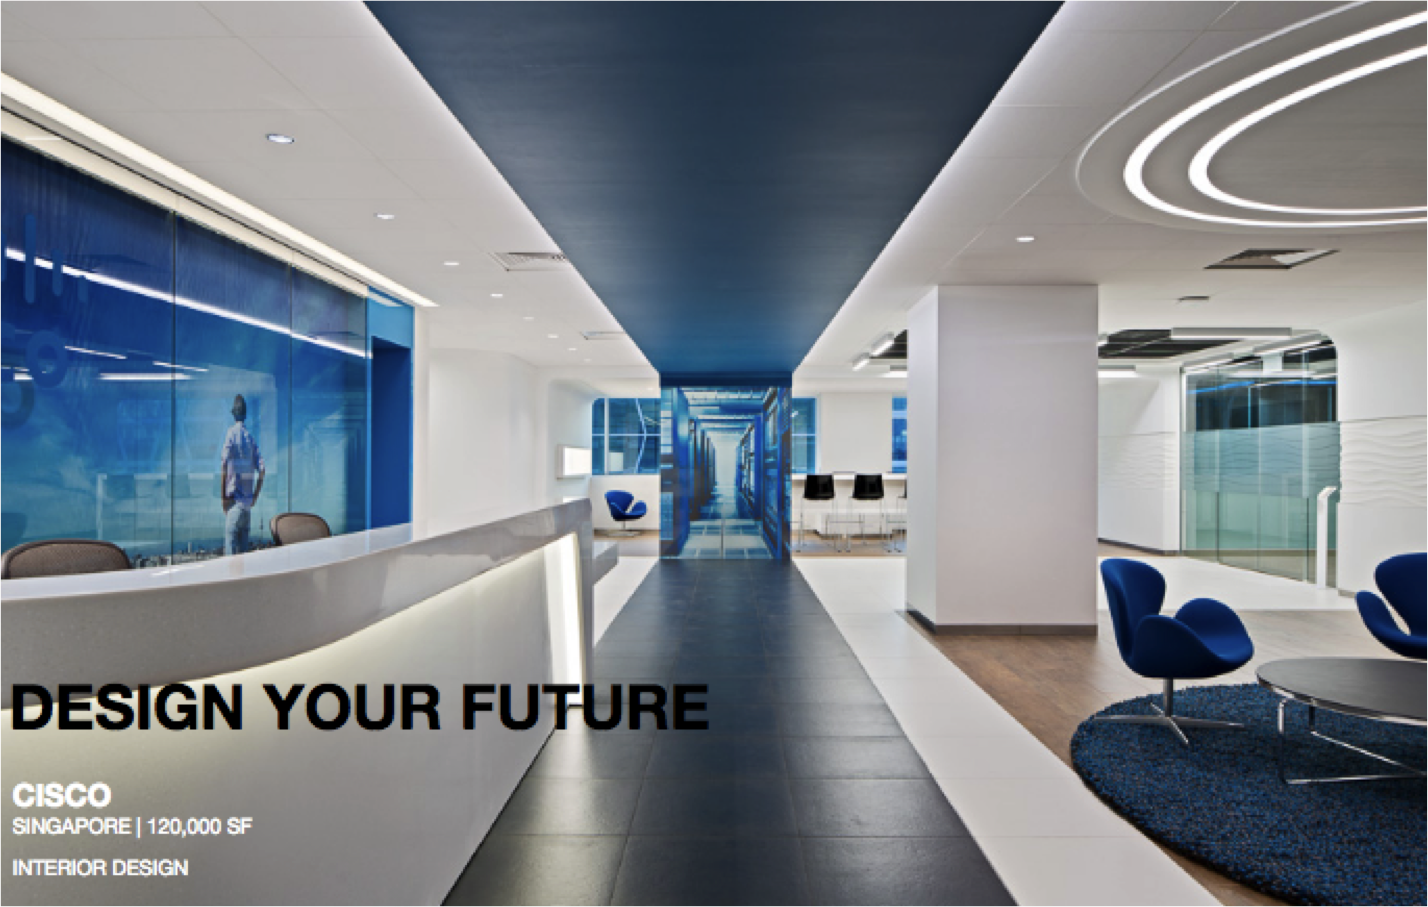 Charmant We Are Seeking A Talented, Creative Interior Designer, Based In Hong Kong,  You Will Be Part Of Our Design Studio Designing Corporate/ Workplace  Interior ...